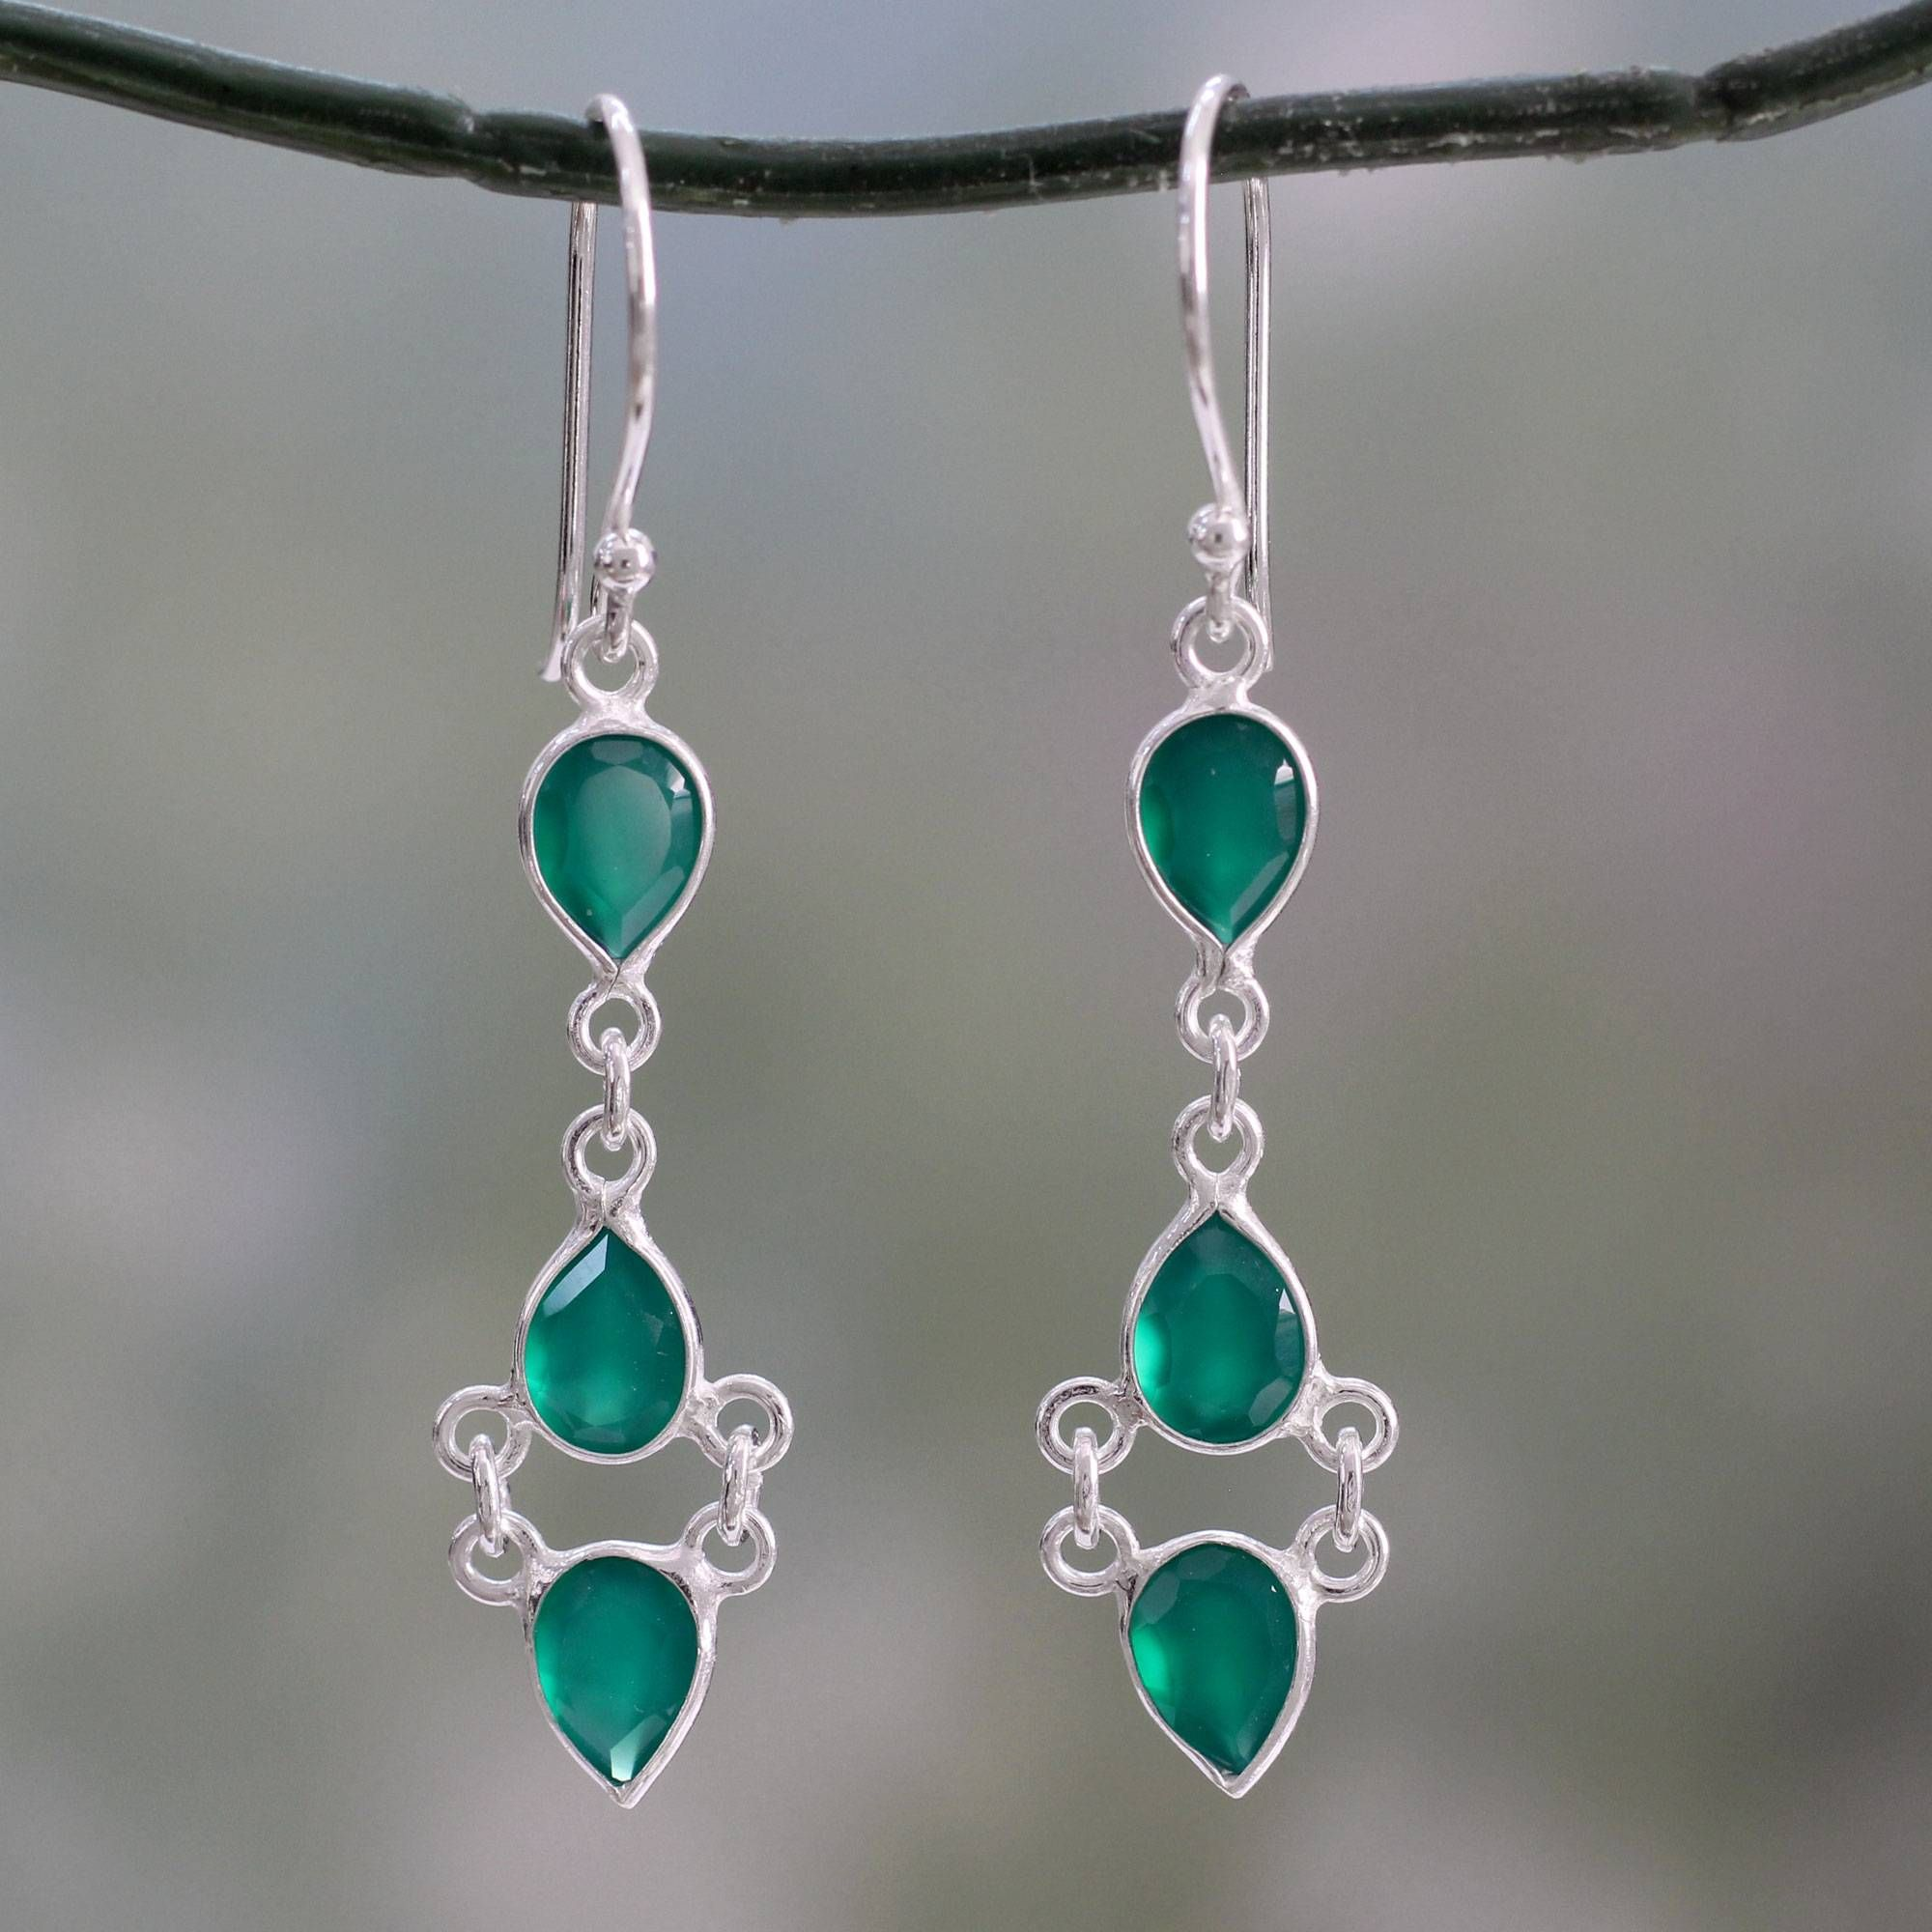 093c53449 Unicef UK Market | Sterling Silver Handcrafted Earrings with Faceted Green  Onyx - Mystic Wonder